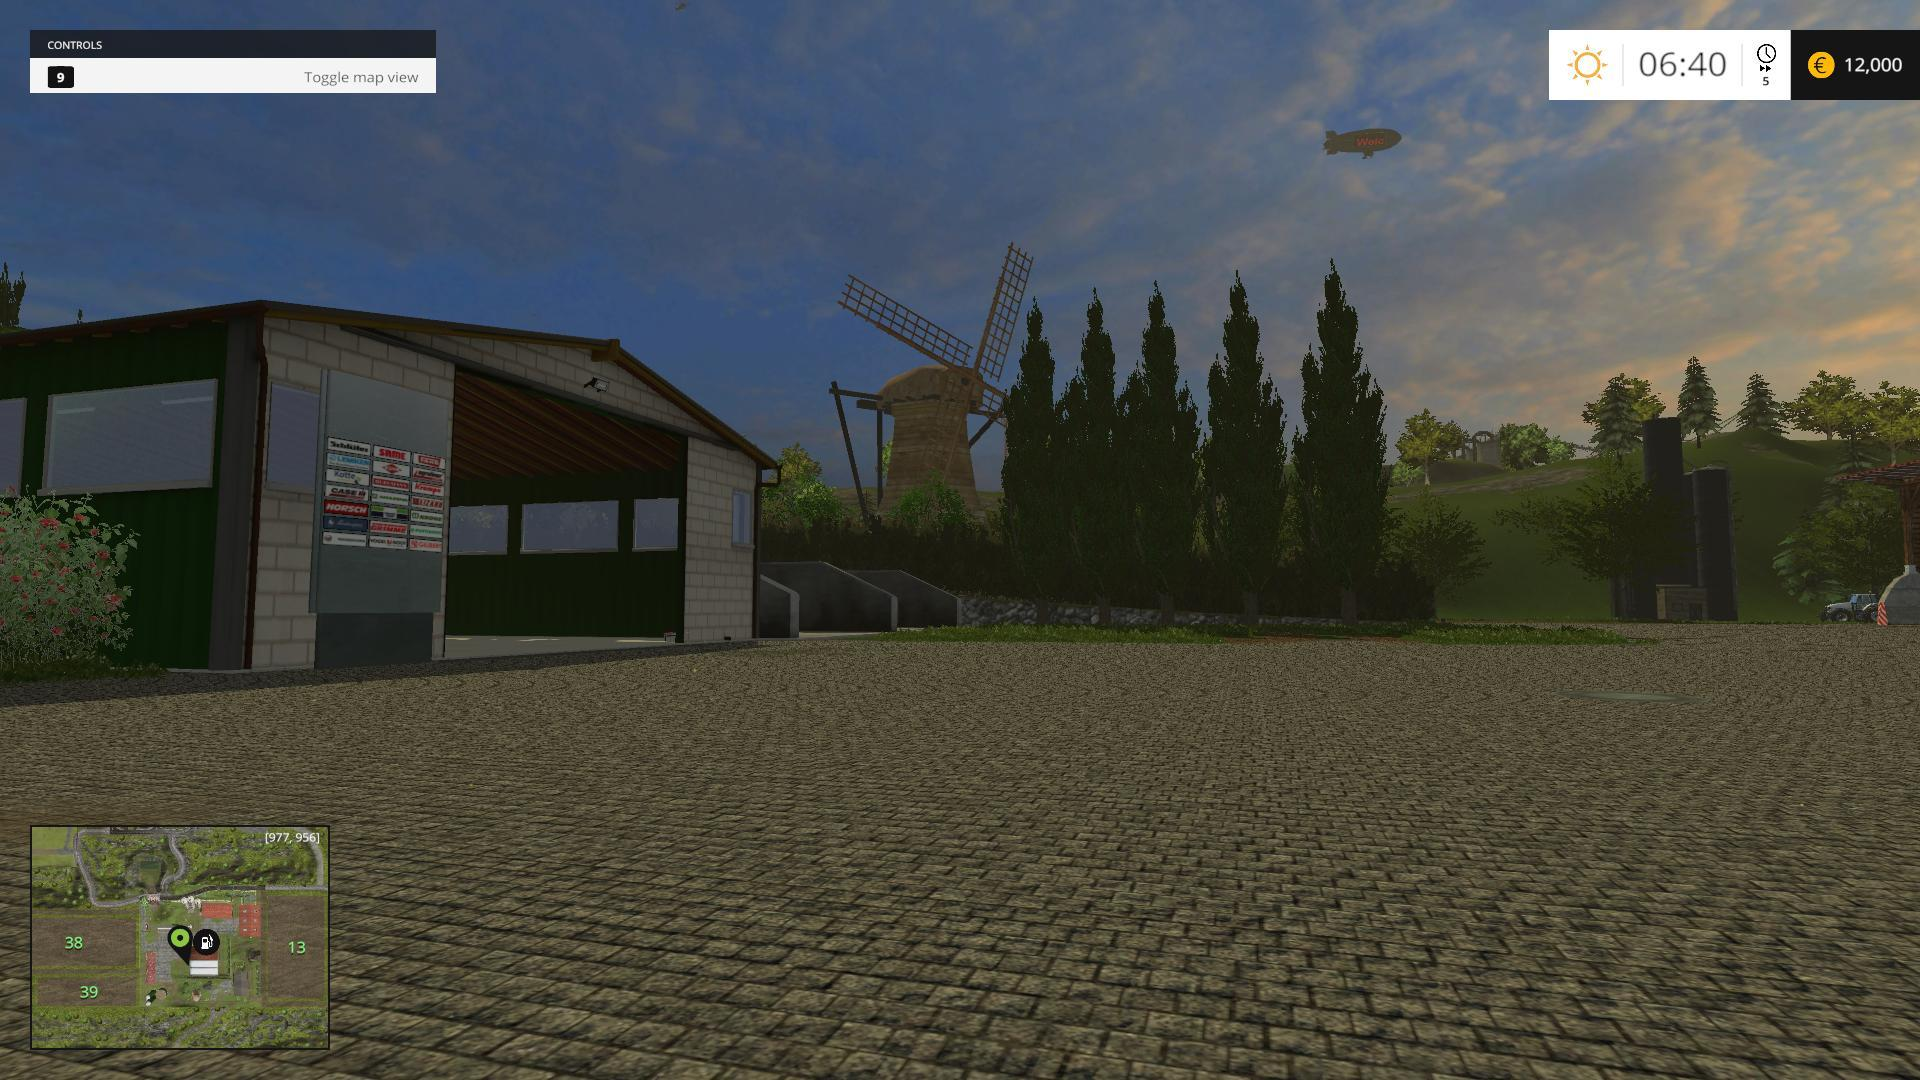 cow farming simulator 2013 map with Big Tonys Map V1 on Fs2015 American Heart Land further Cow Silo Placement Ge V1 0 likewise Mods besides Bearbeitete Bjornholm besides Hagenstedt V 1 2 5 0 Fs15.